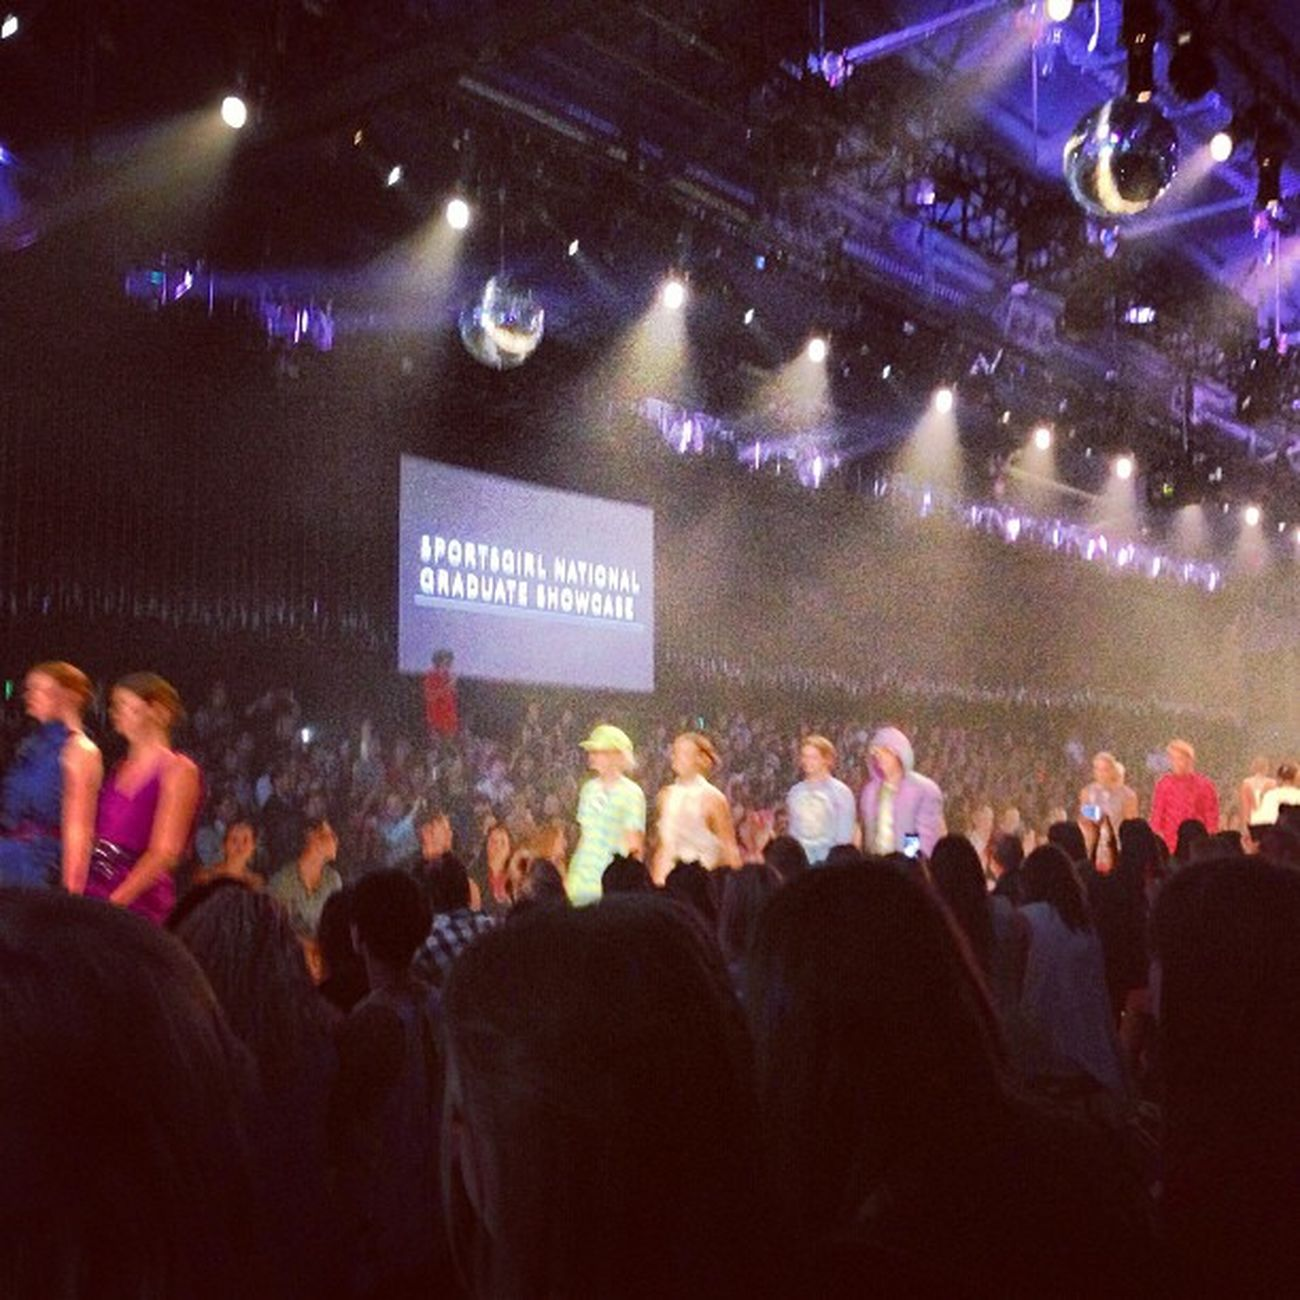 Sportsgirl Graduations finale. Such an inspiration.